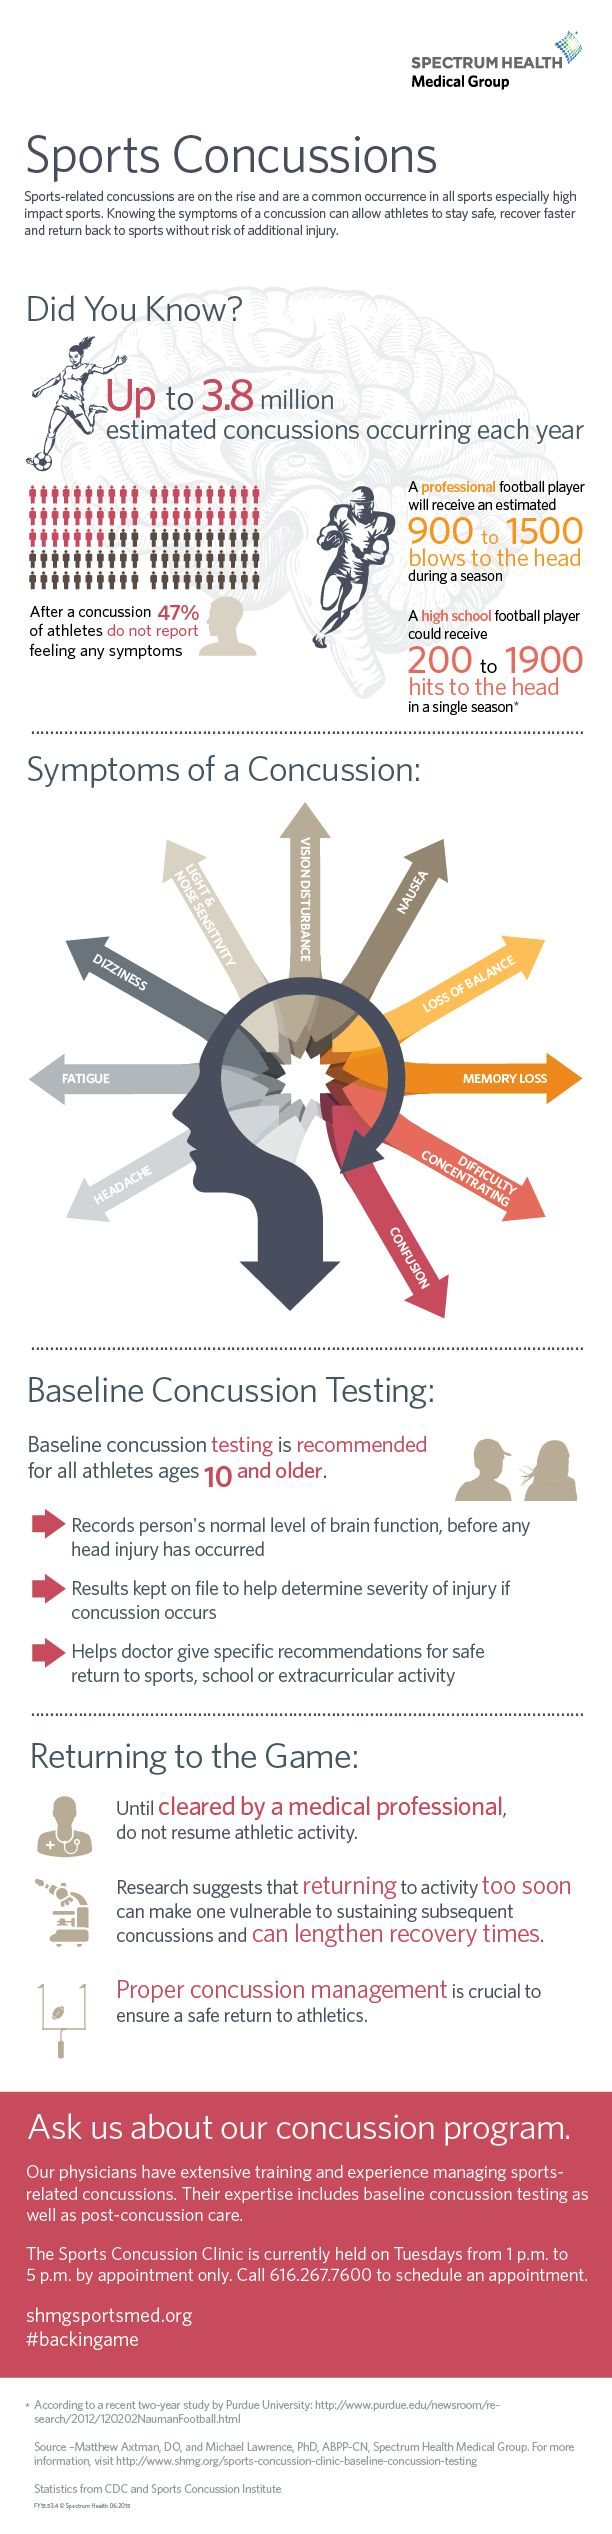 Learn more. #concussions https://healthbeat.spectrumhealth.org/infographics/sports-concussions/